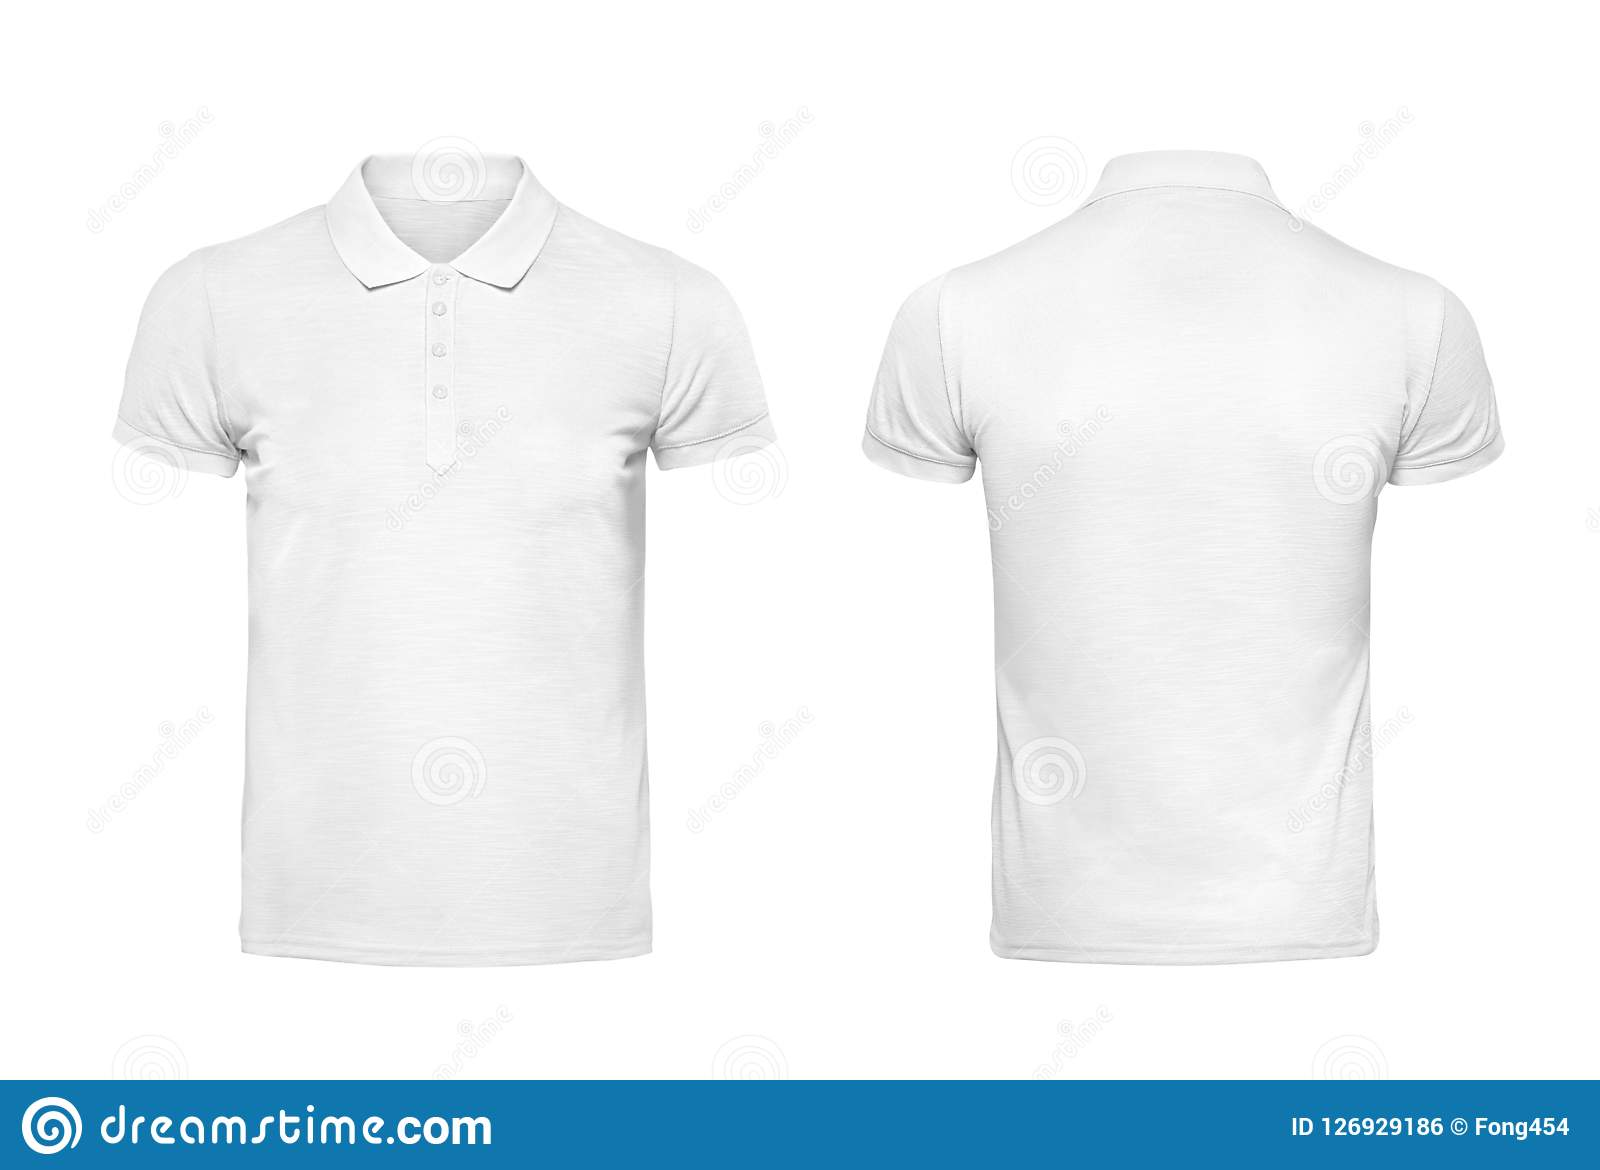 White Polo Tshirt Design Template Isolated On White With Clipping